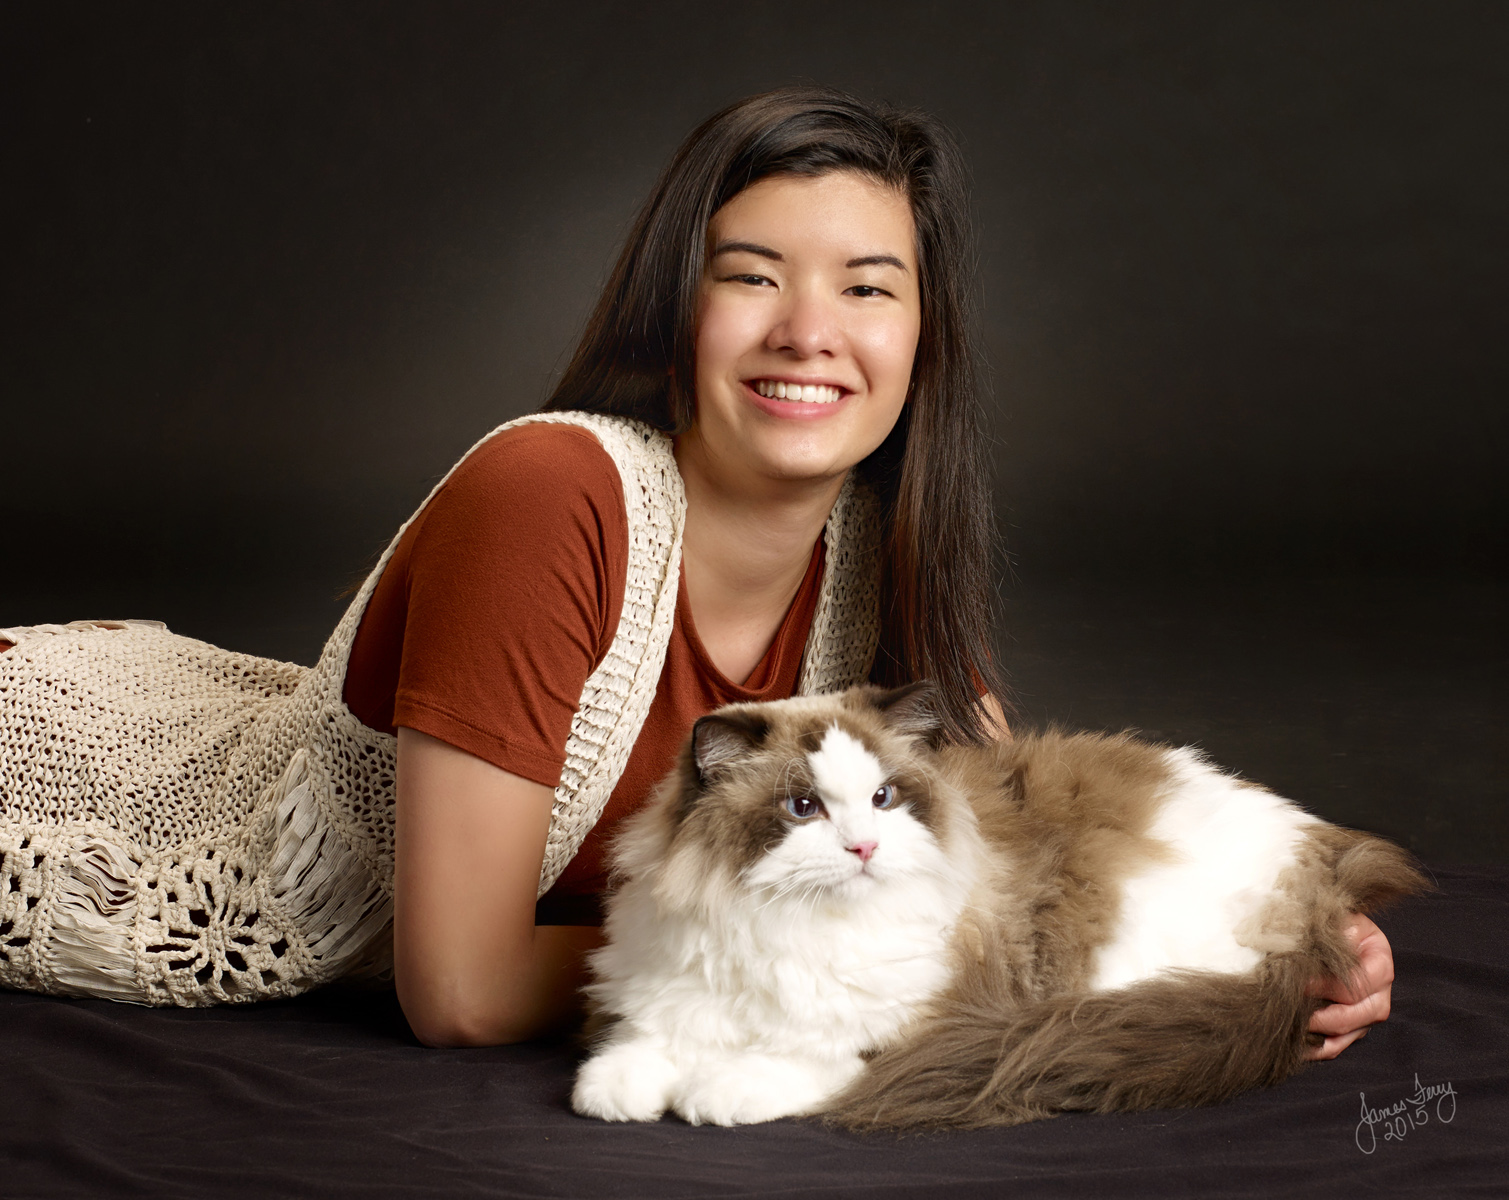 Senior Portrait with pet